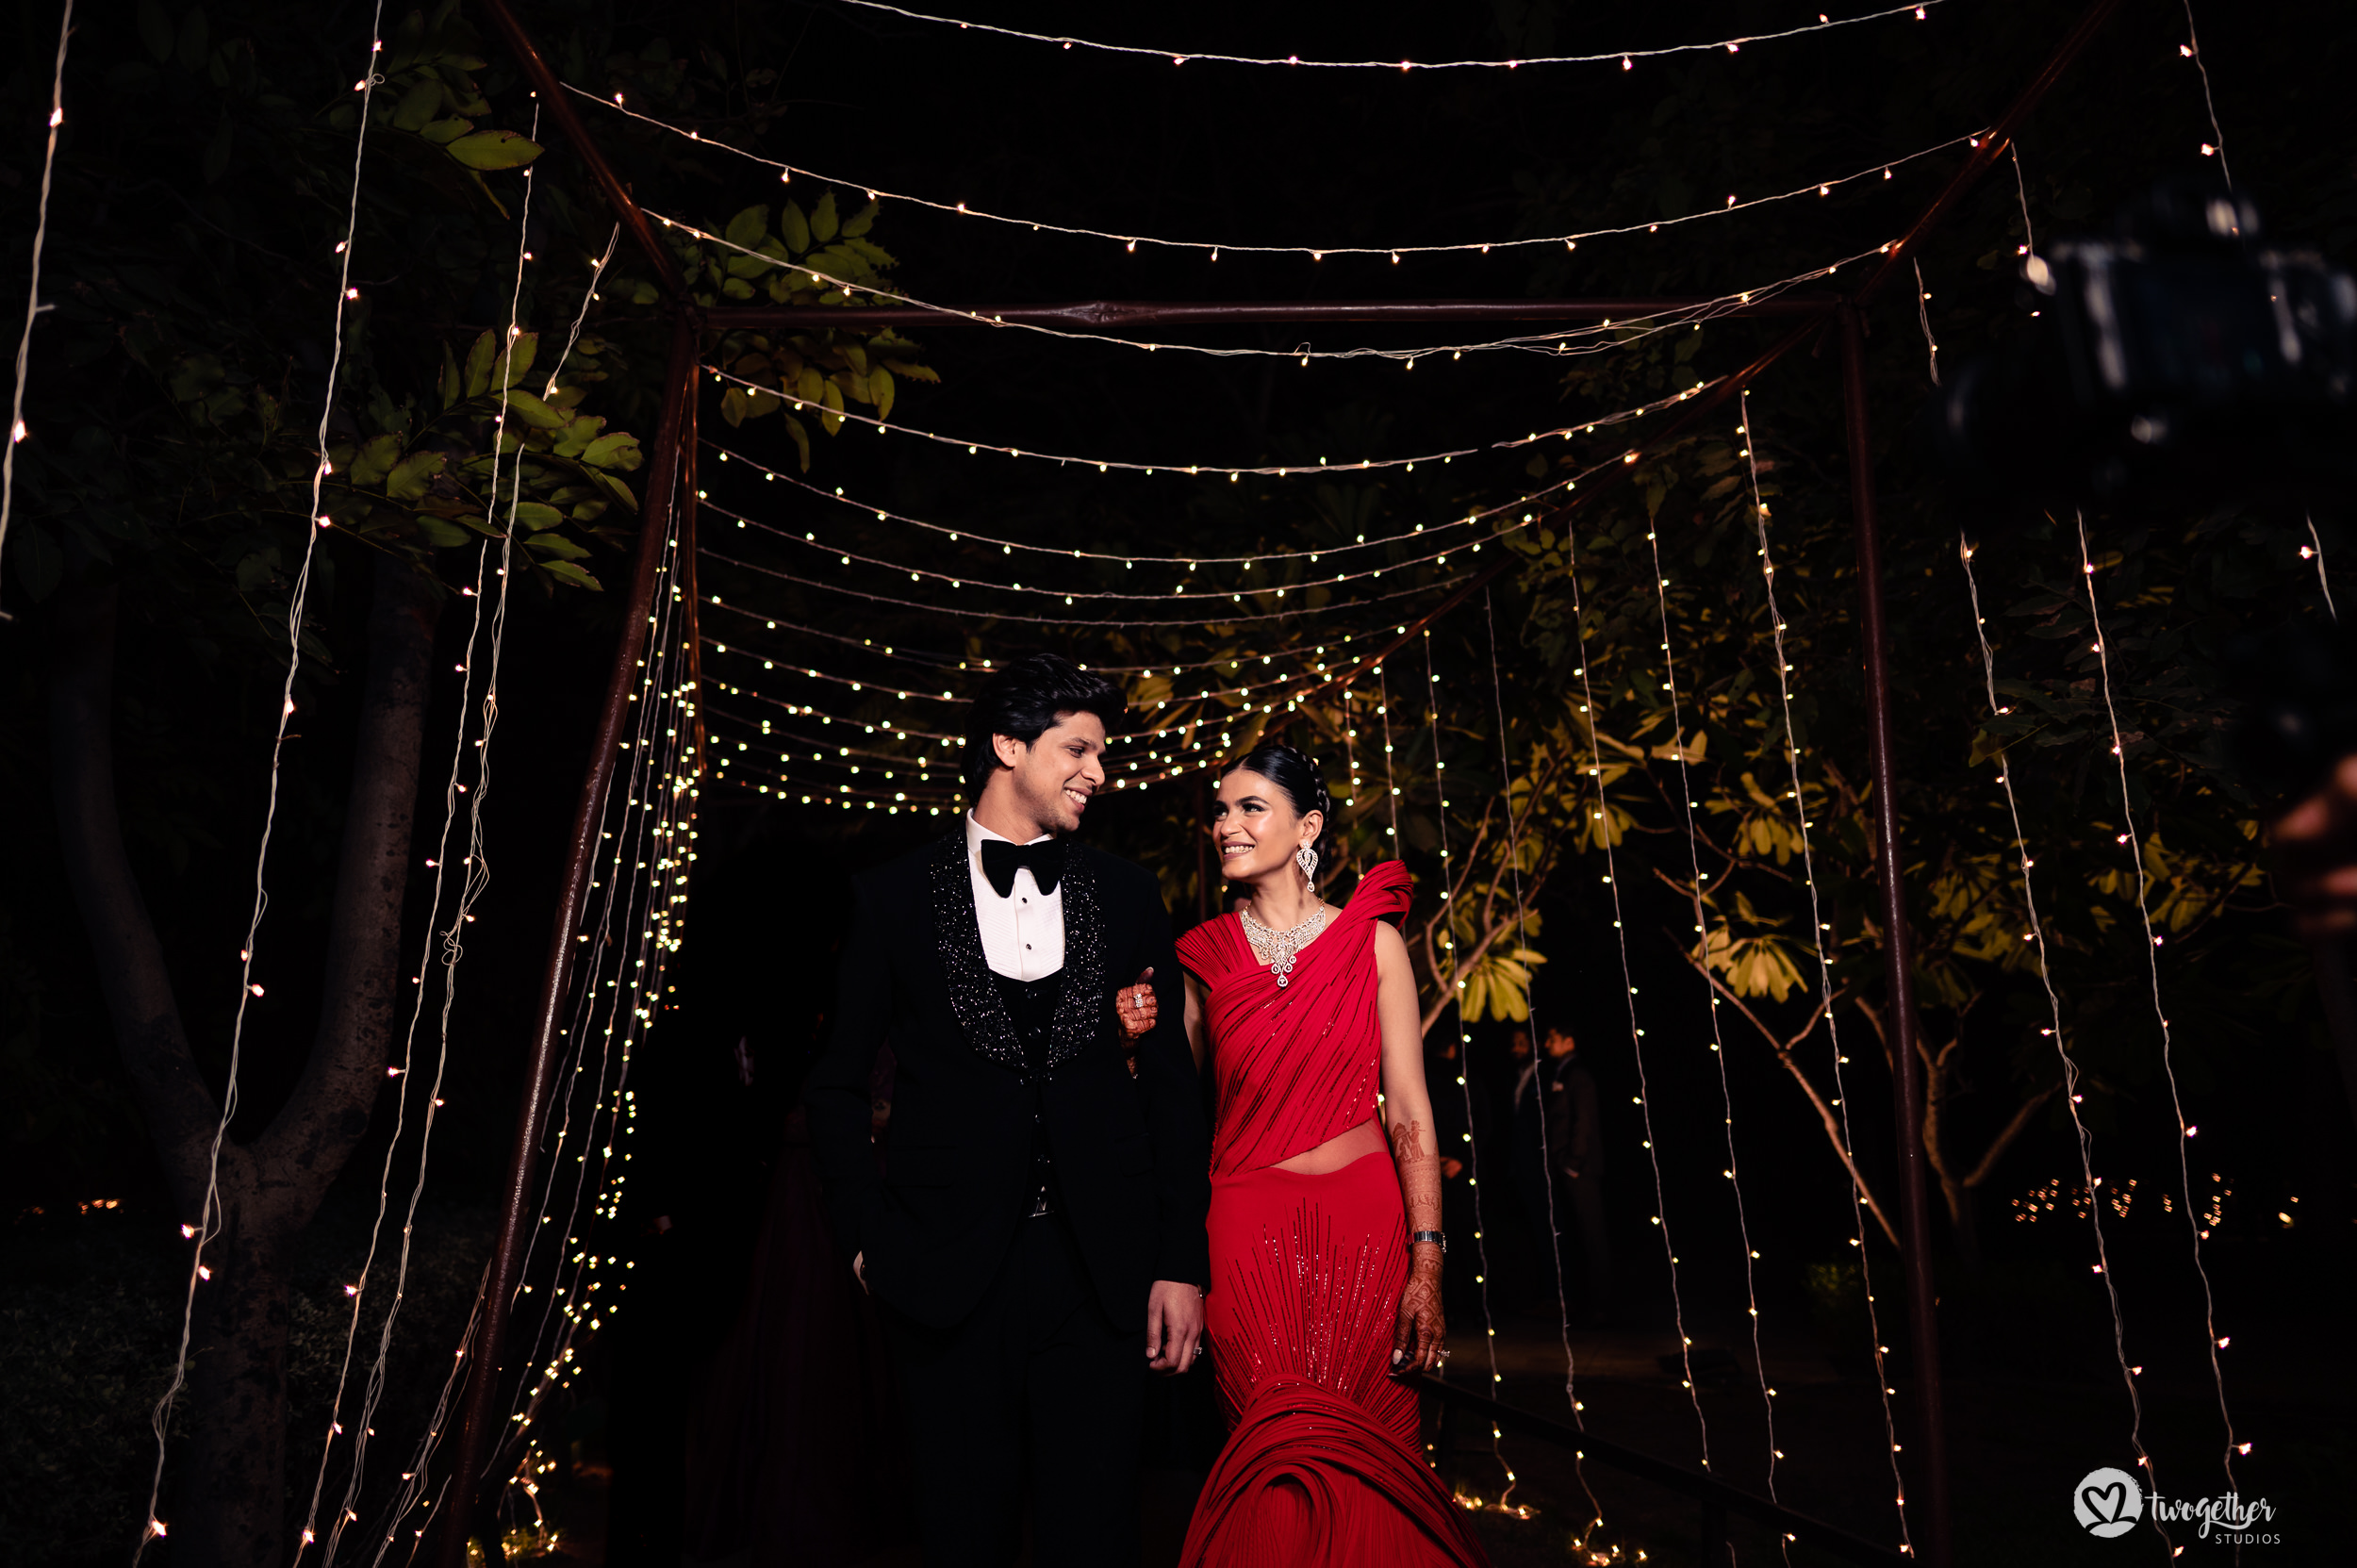 Sangeet night couple portrait at an Indian wedding in Westin Sohna.